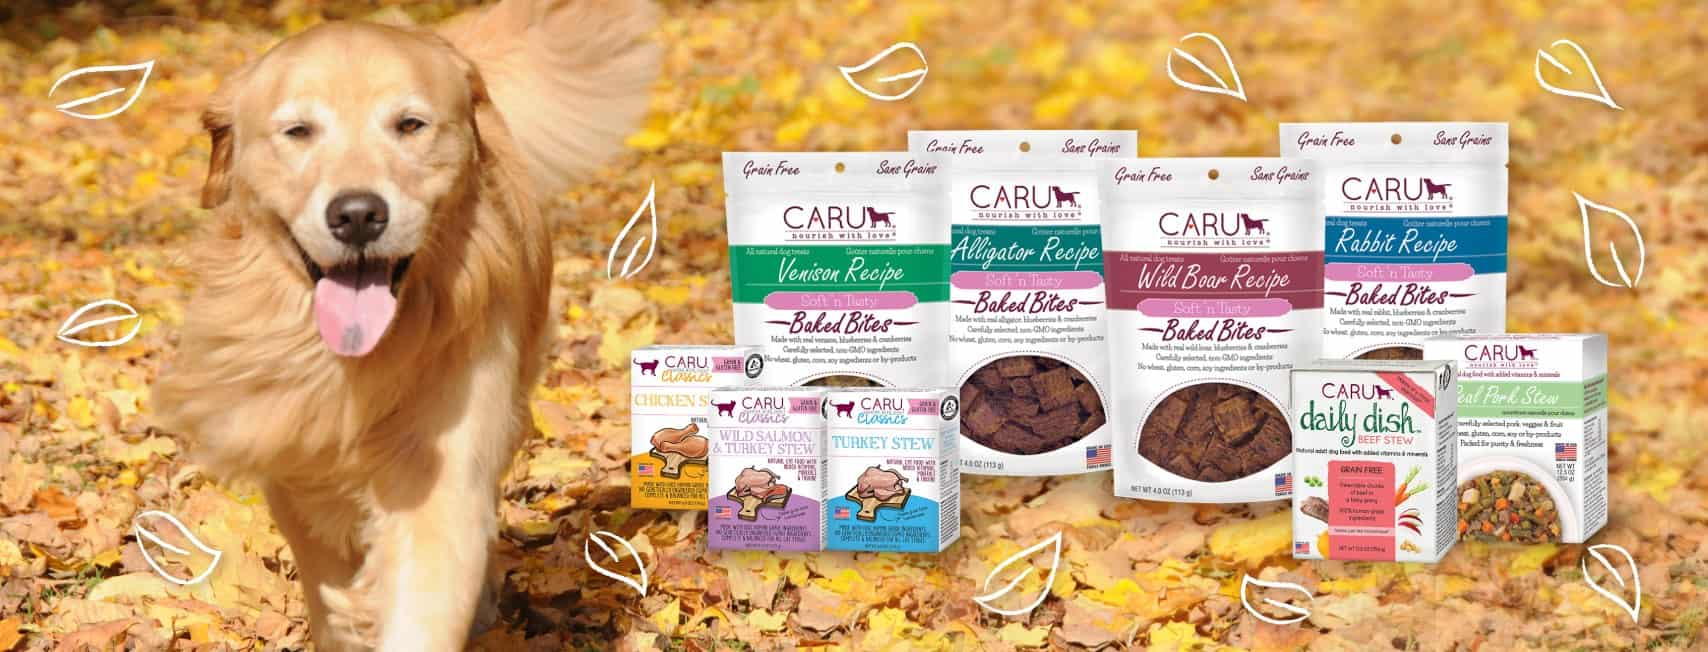 caru dog food review